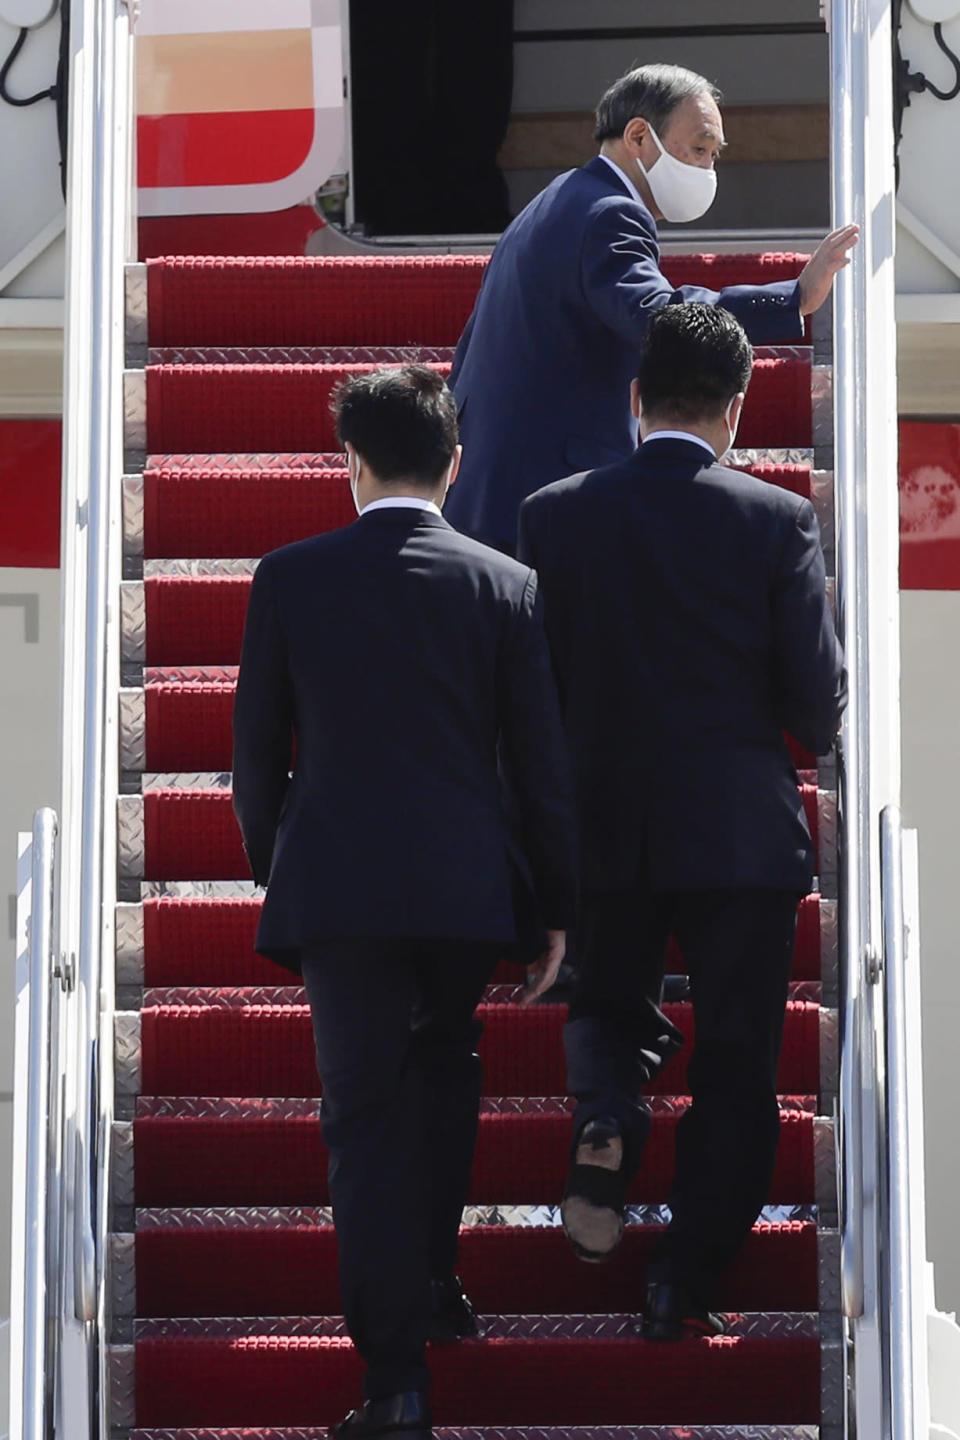 Japanese Prime Minister Yoshihide Suga, top, waves as he boards his plane to depart at Andrews Air Force Base, Md., Saturday, April 17, 2021, after his visit to Washington. (AP Photo/Luis M. Alvarez)